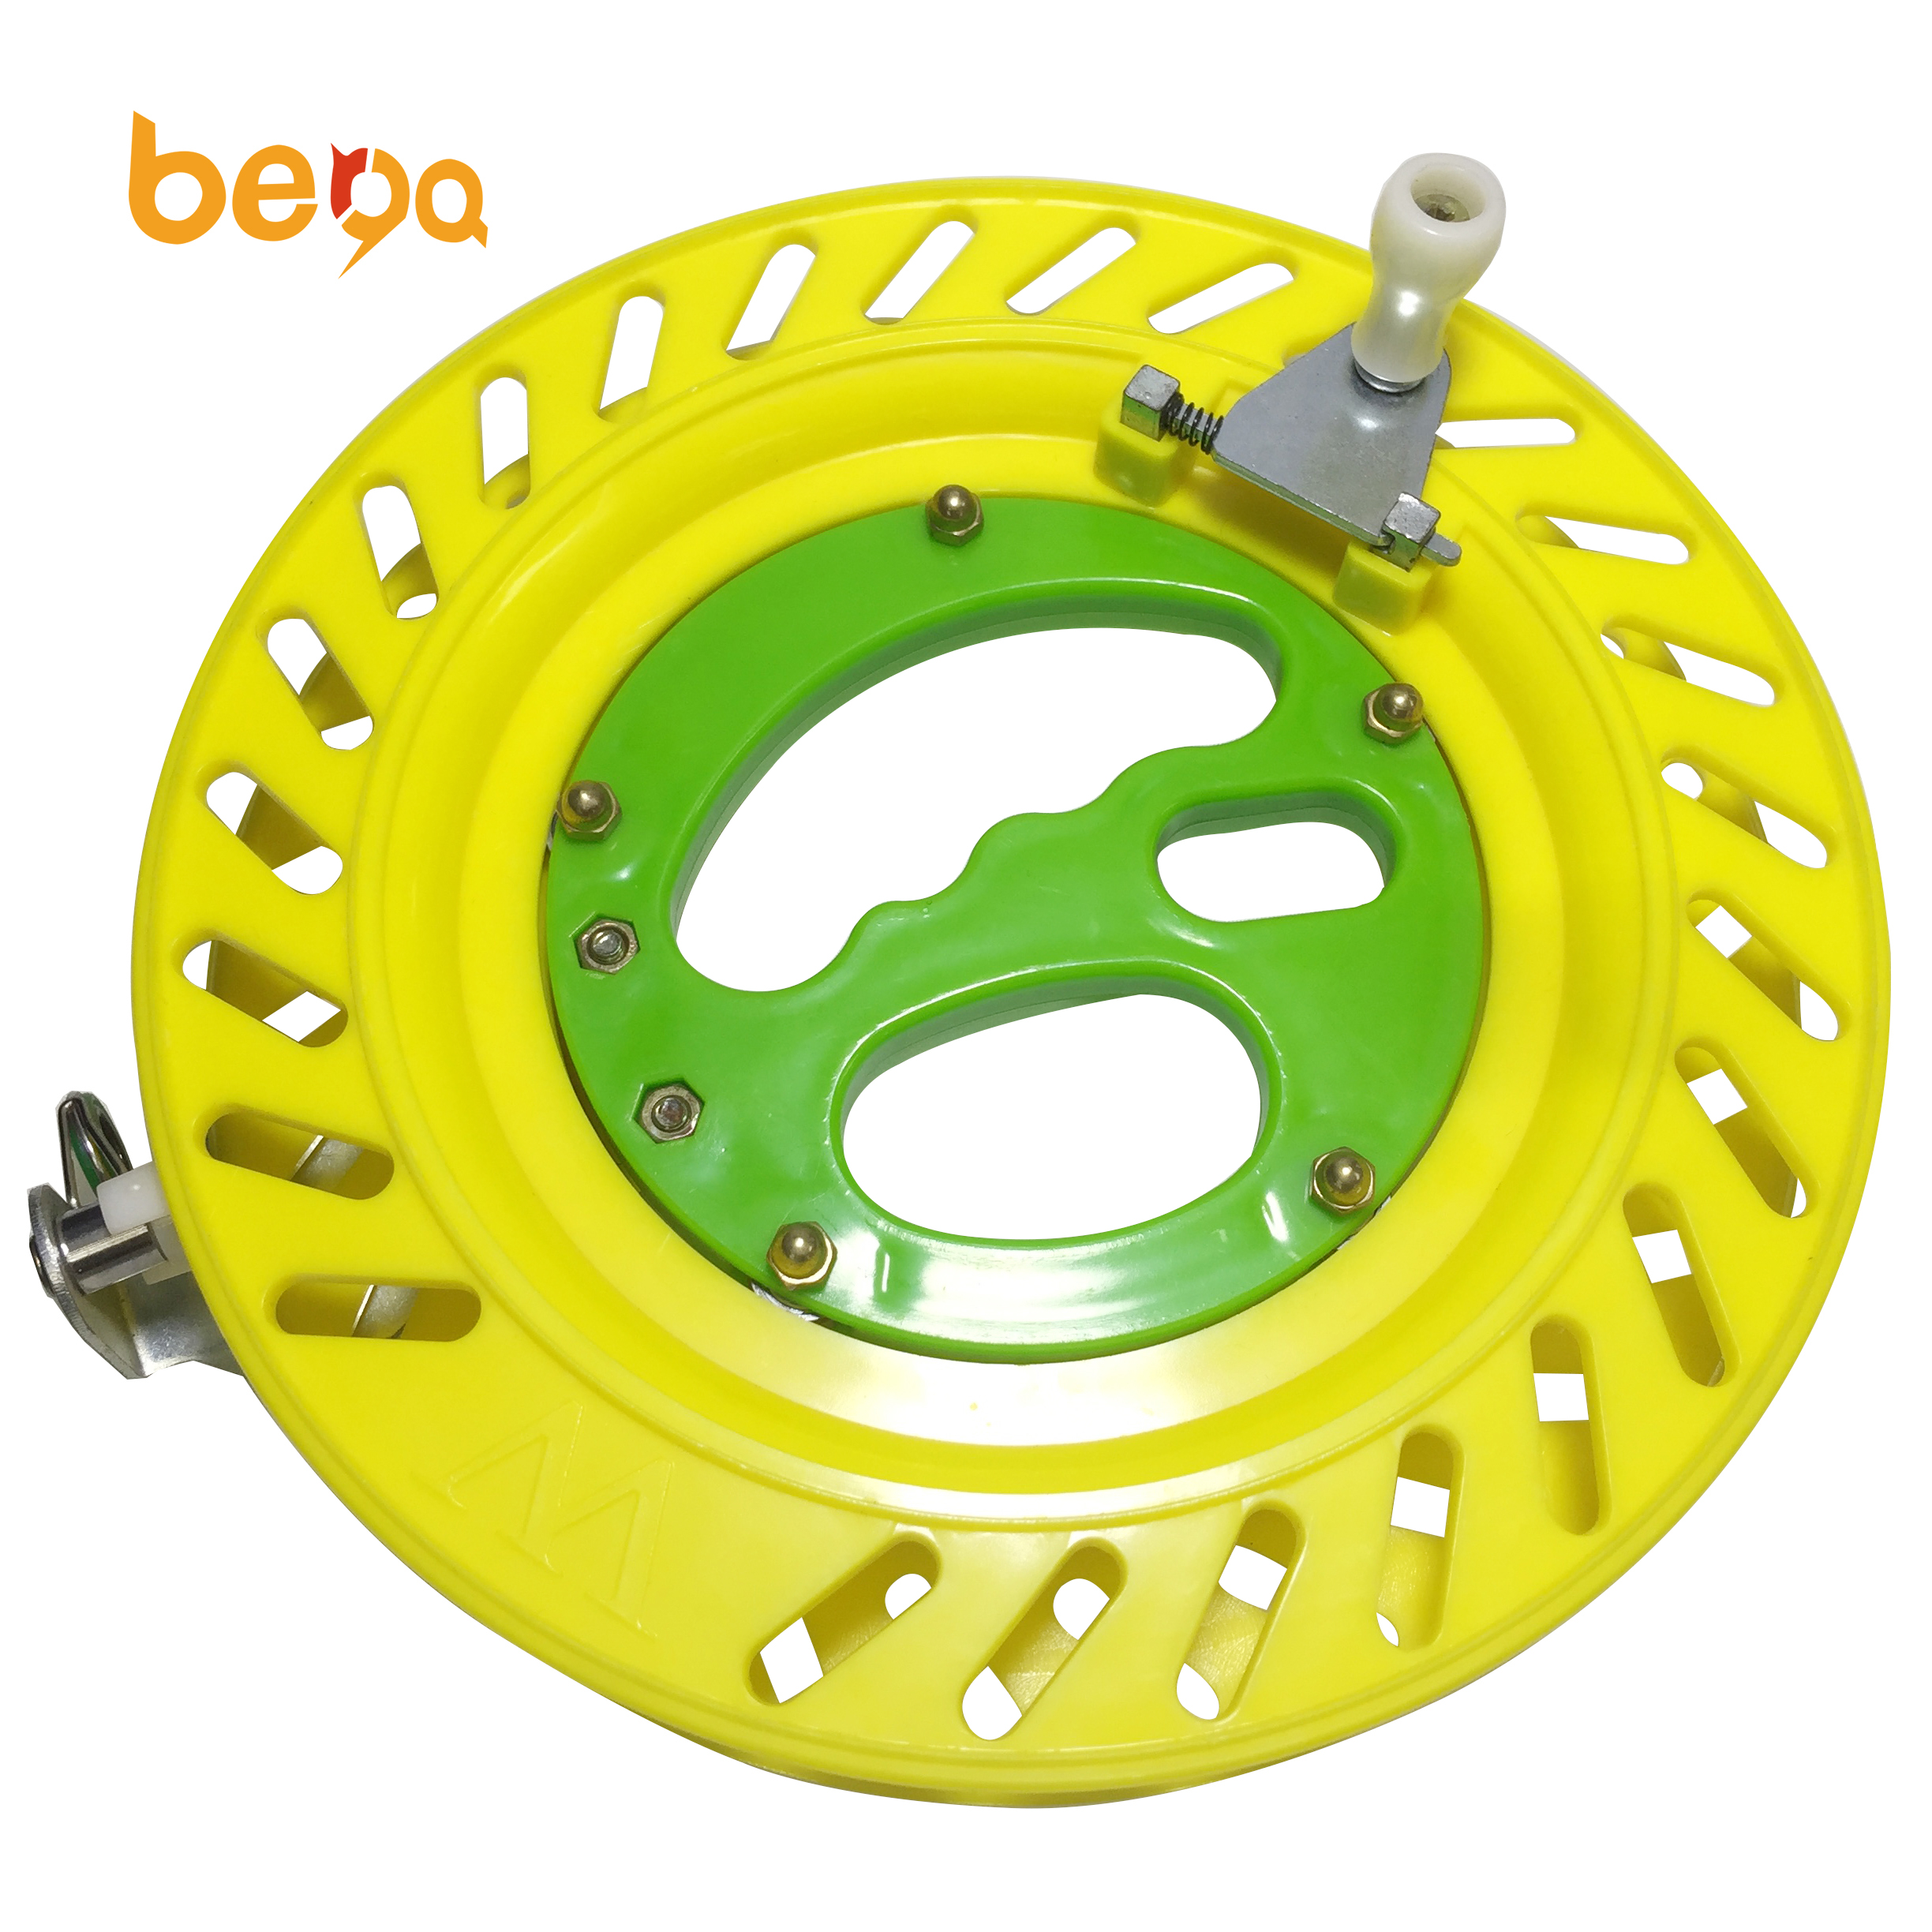 plastic kite reel wheel lockable from the factory